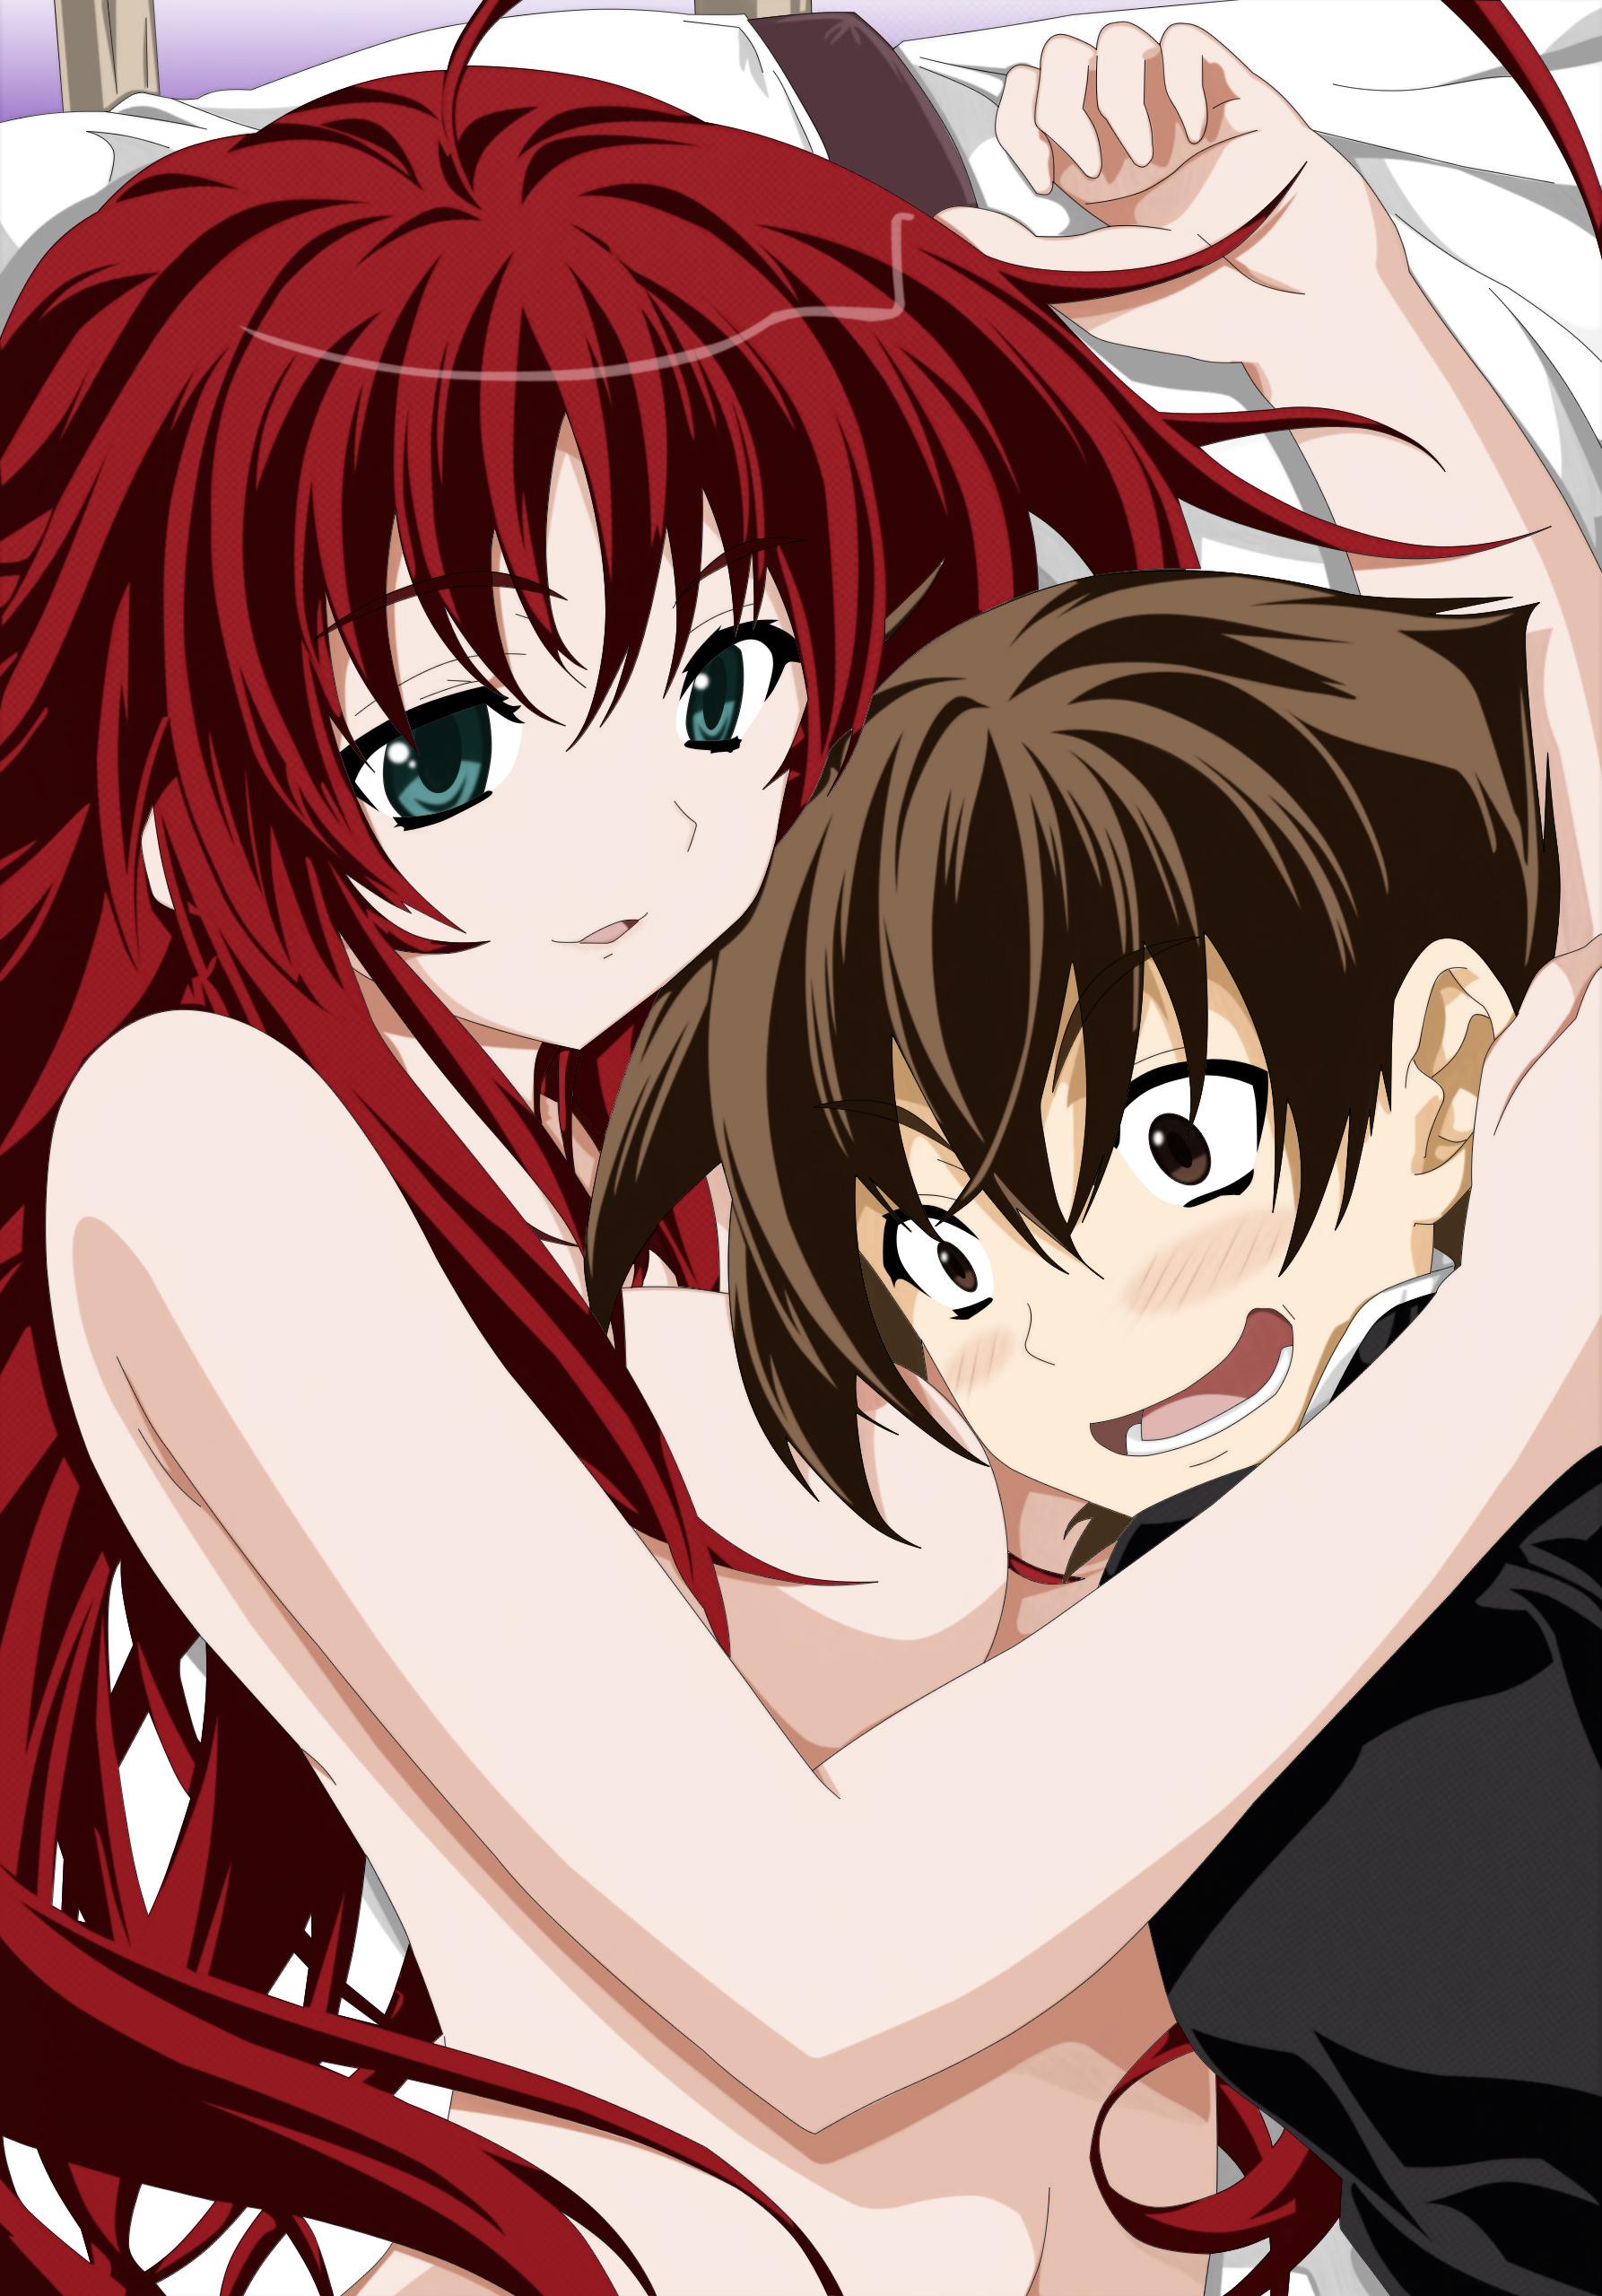 Rias Gremory and Issei Hyoudou by Maximilian-Destroyer on